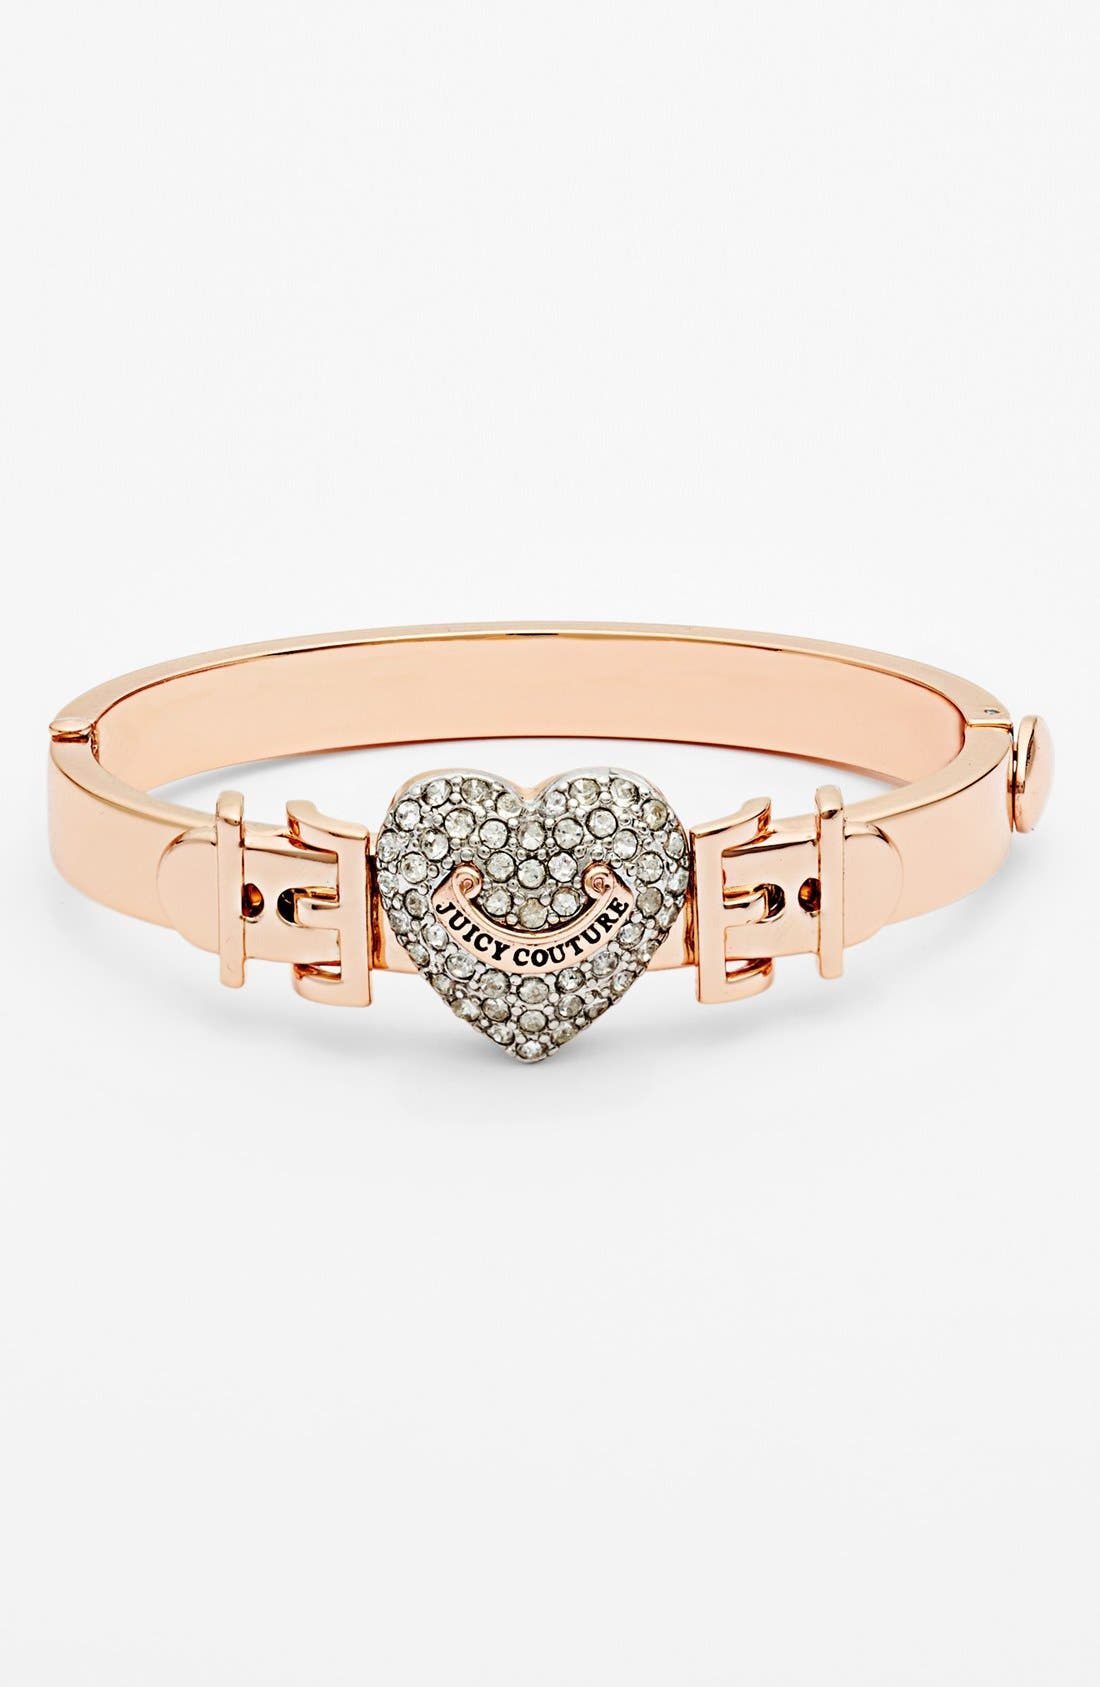 Main Image - Juicy Couture 'Juicy at Heart' Pavé Heart Buckle Hinged Bangle